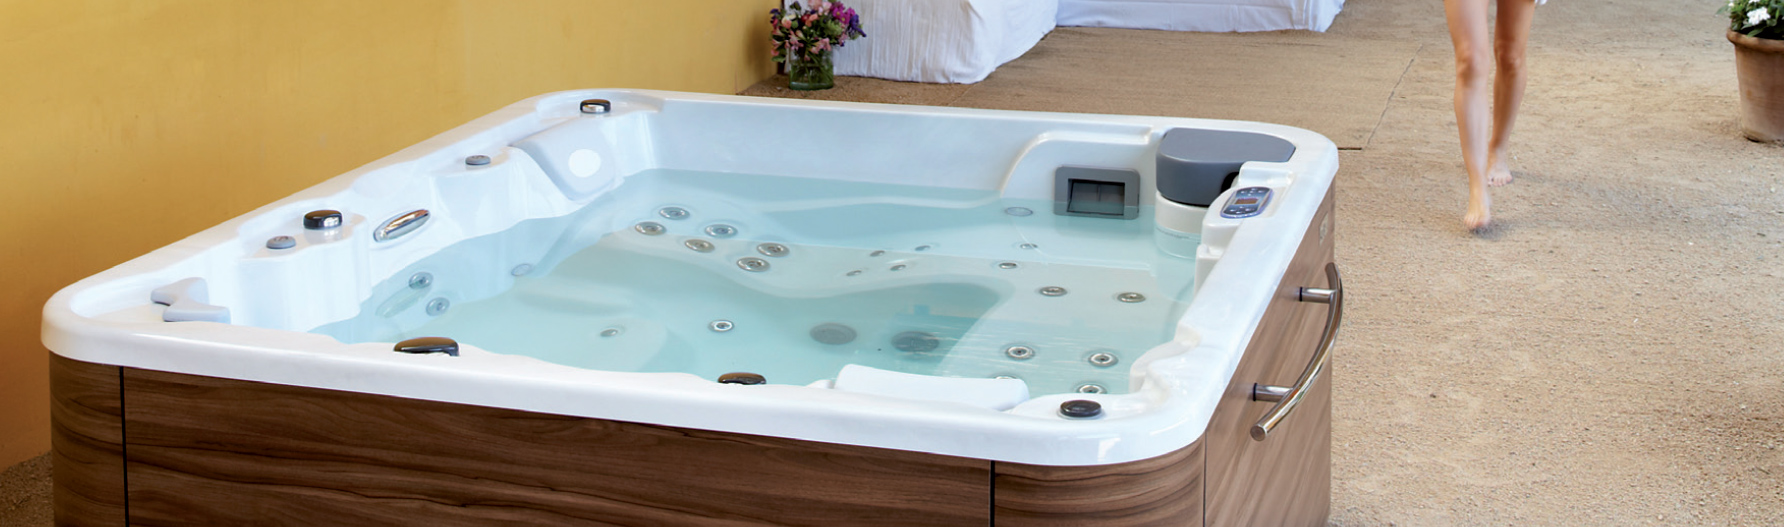 Spa ext rieur jacuzzi int rieur spa 5 places spa 6 places spa inox suisse - Jacuzzi 2 places exterieur ...